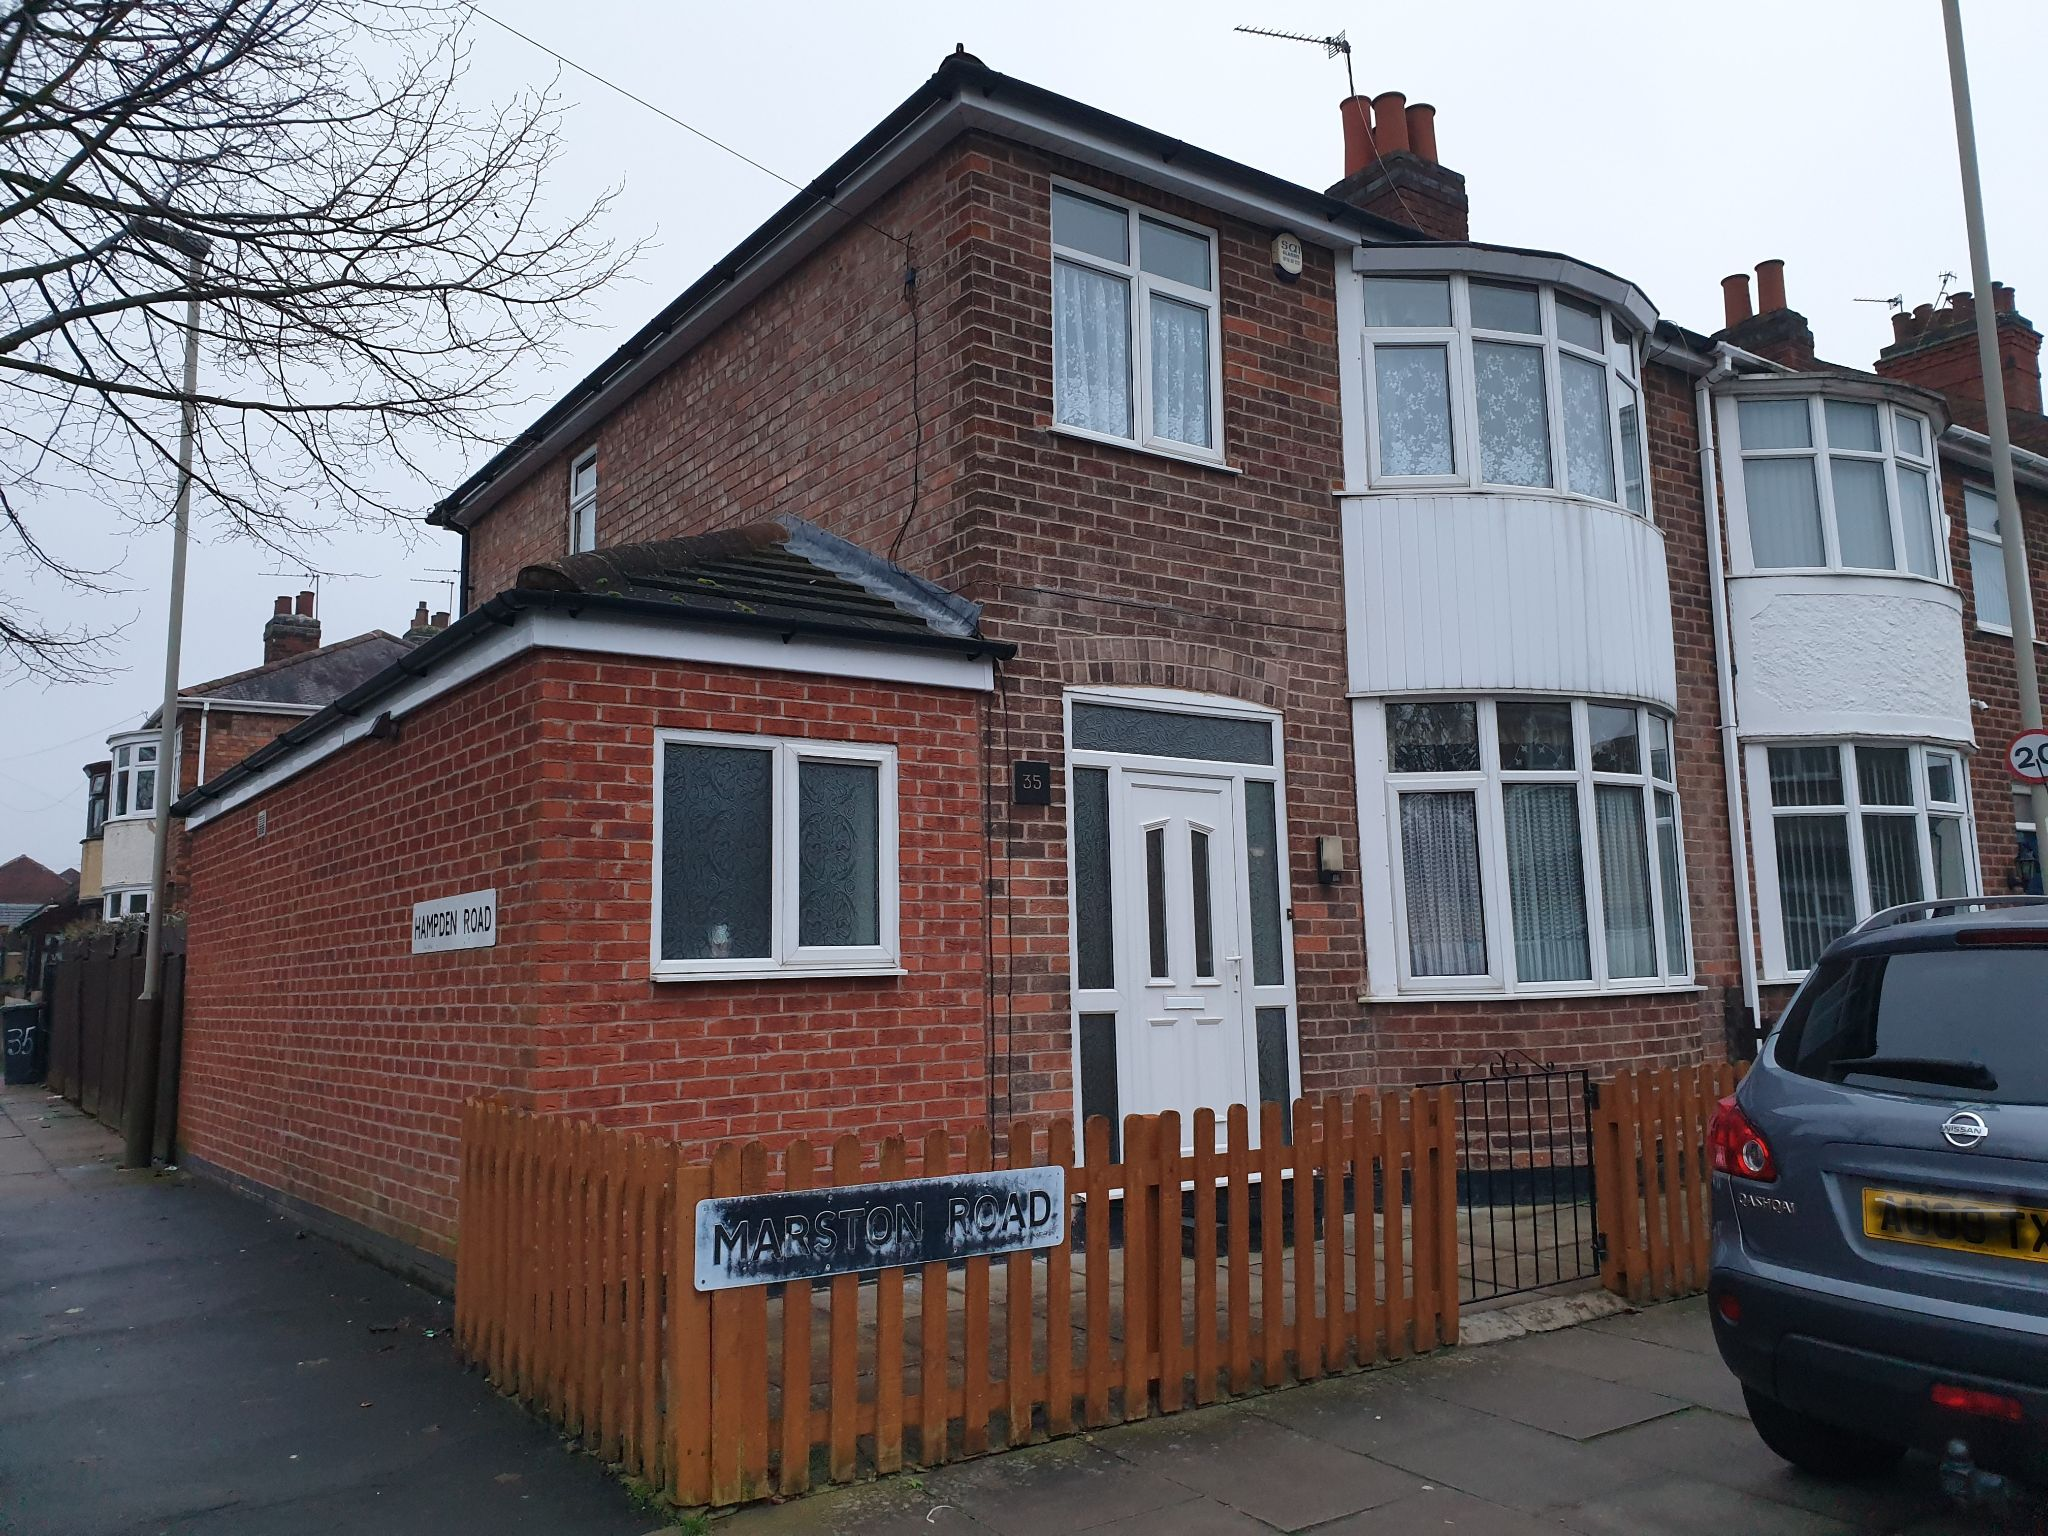 35 Marston Road, Leicester